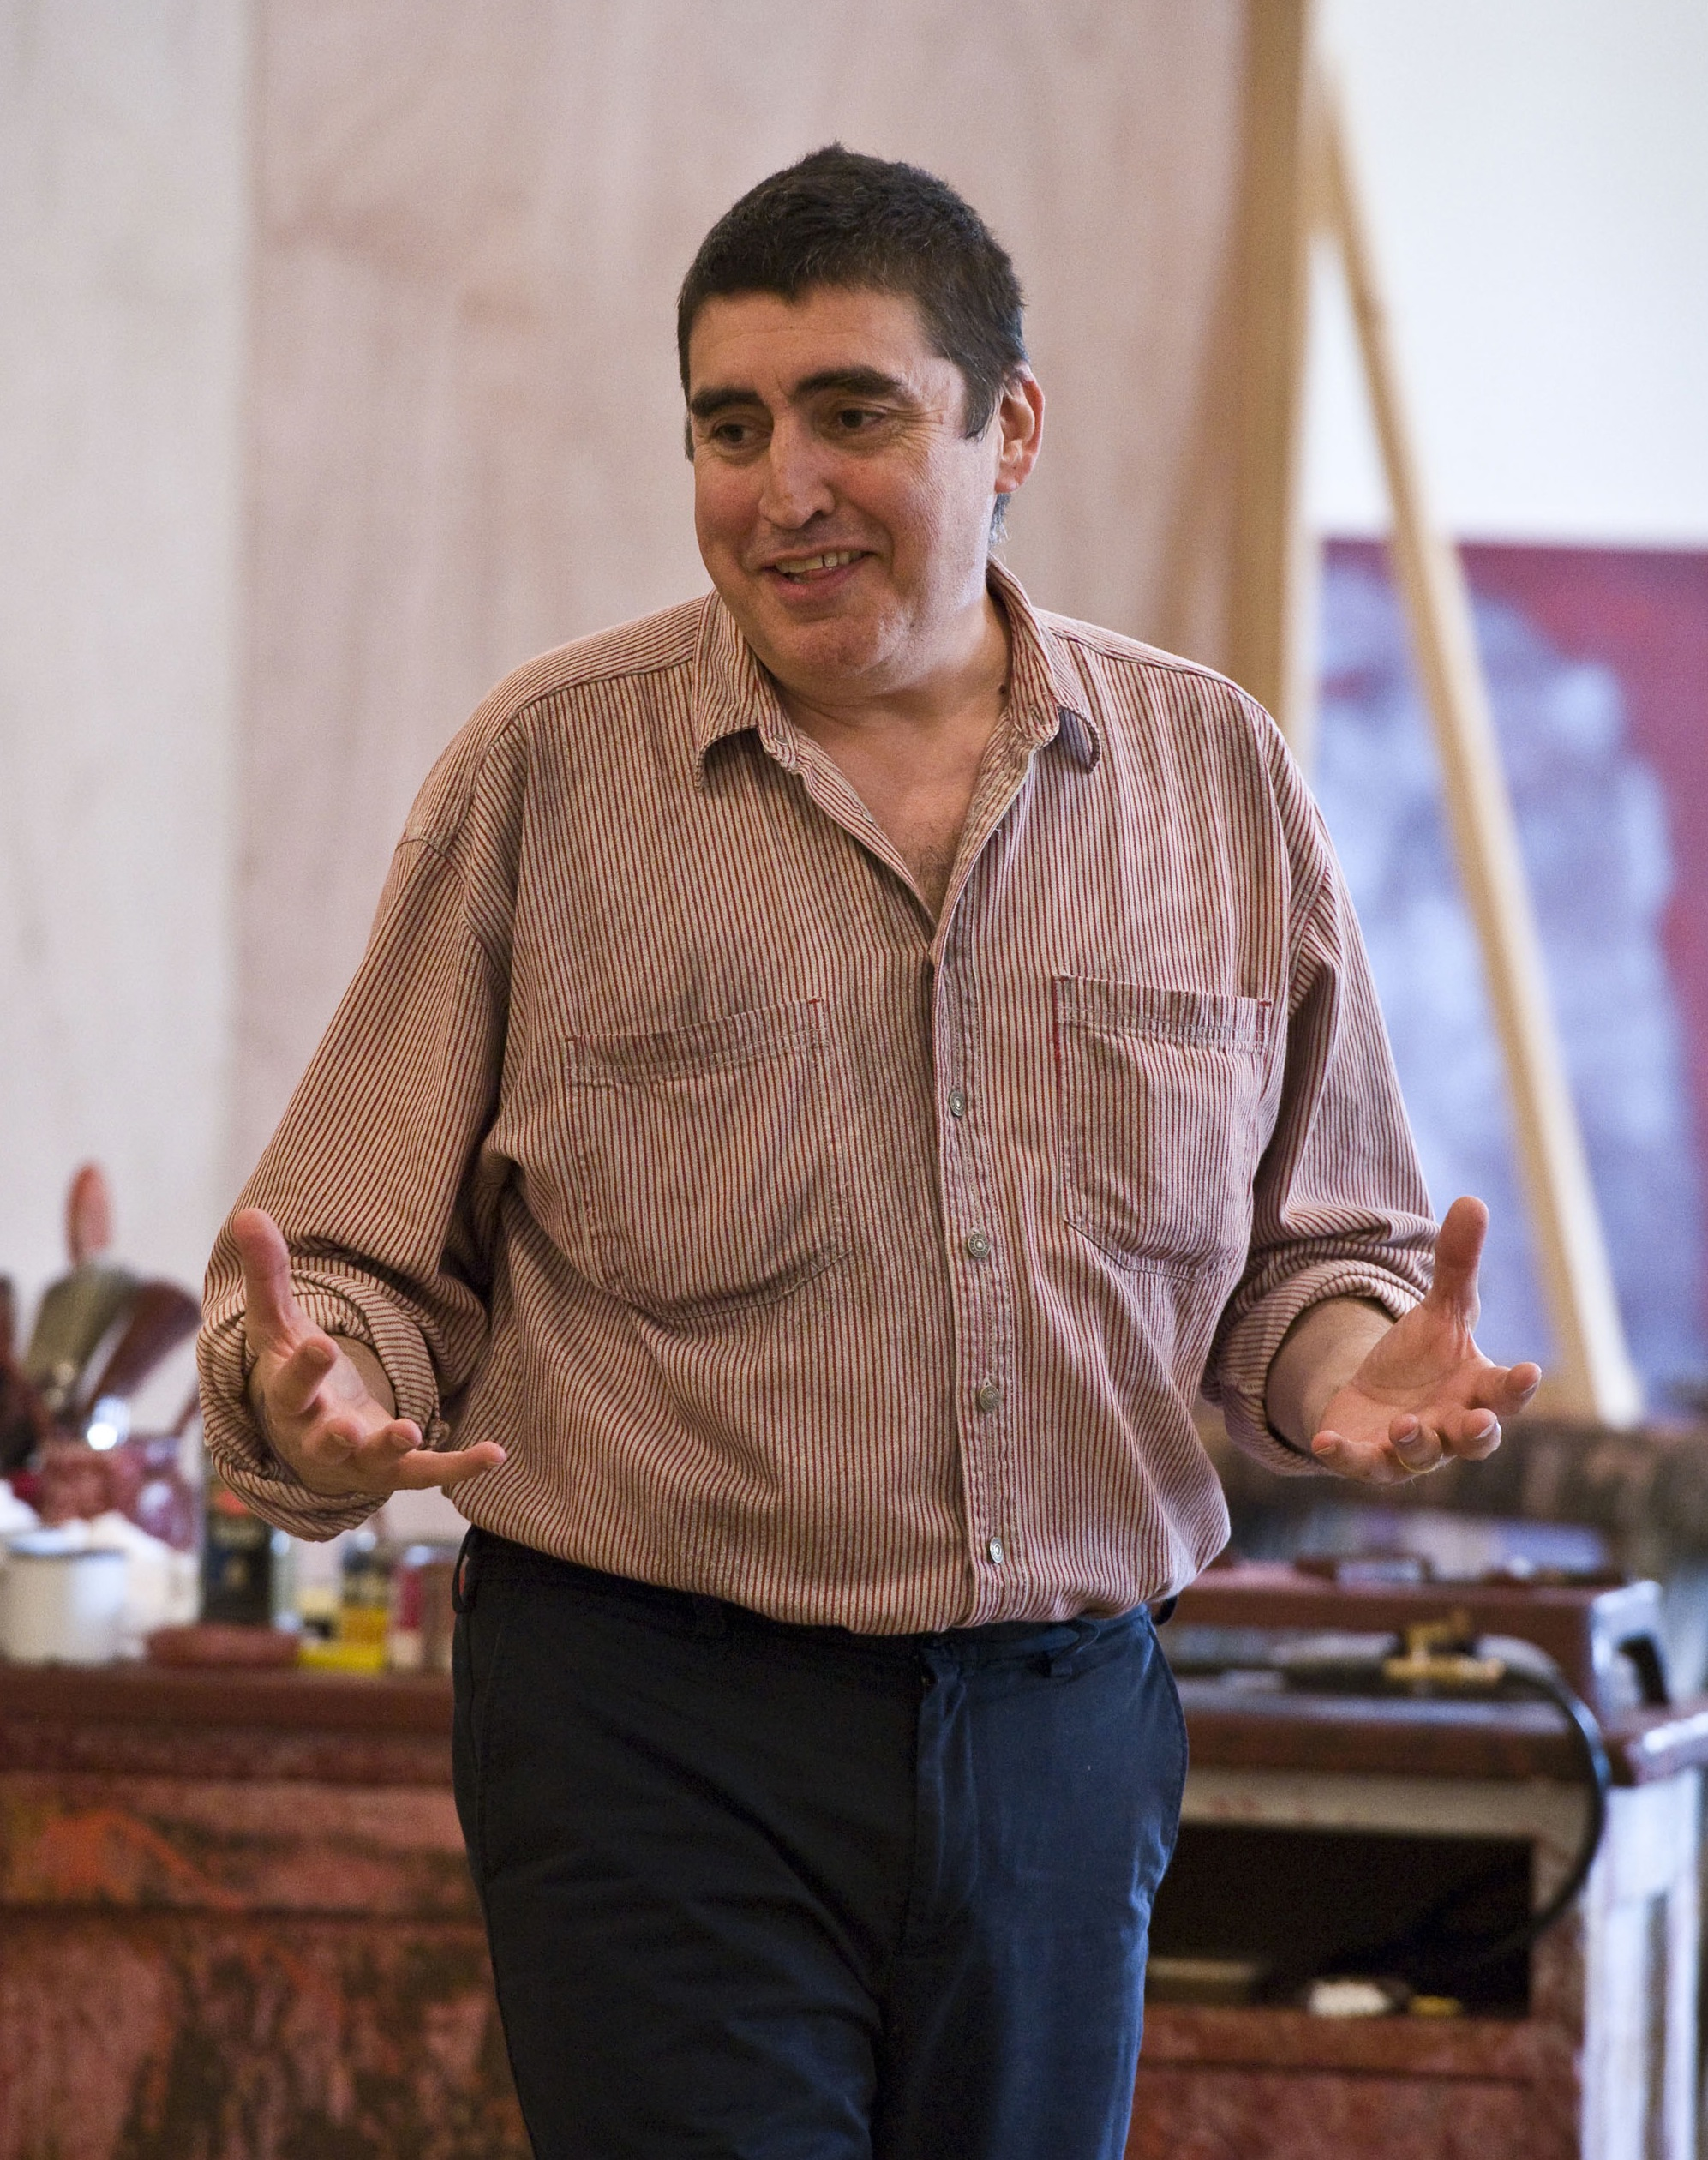 Photo Flash: Jonathan Groff, Alfred Molina in Rehearsal for RED